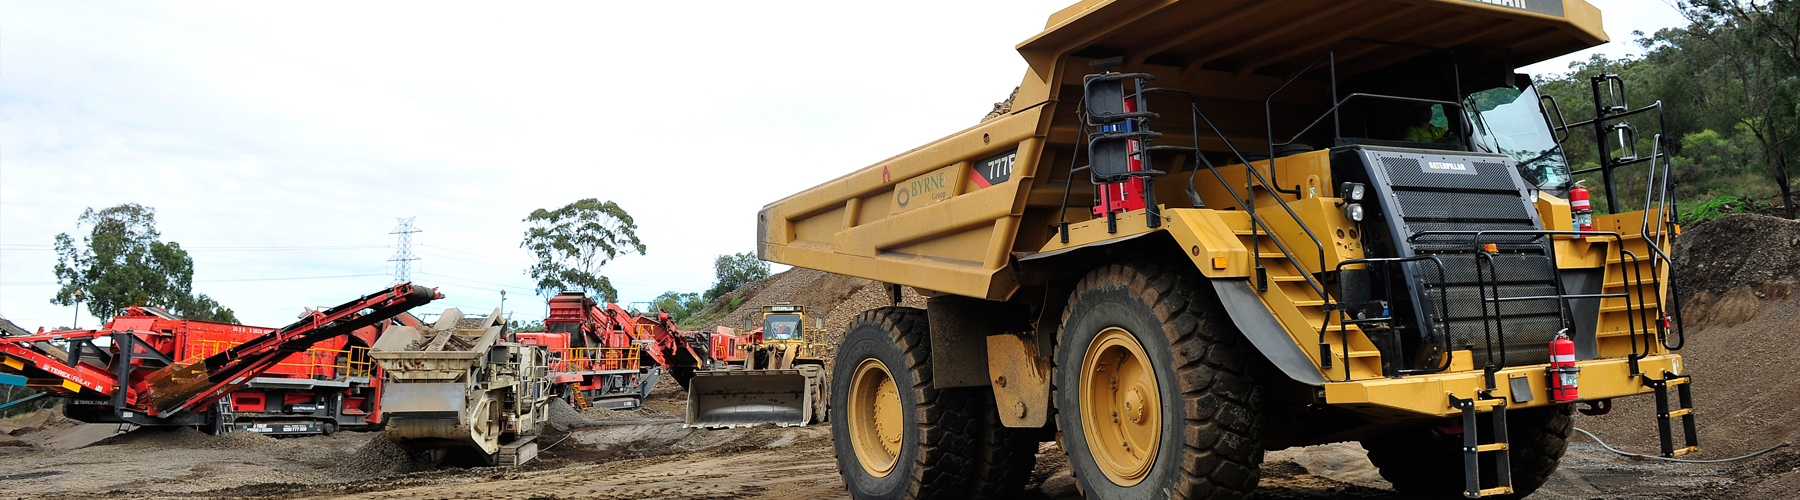 Dump Truck Operators Bowral mine Mugga Quarry Site Canberra